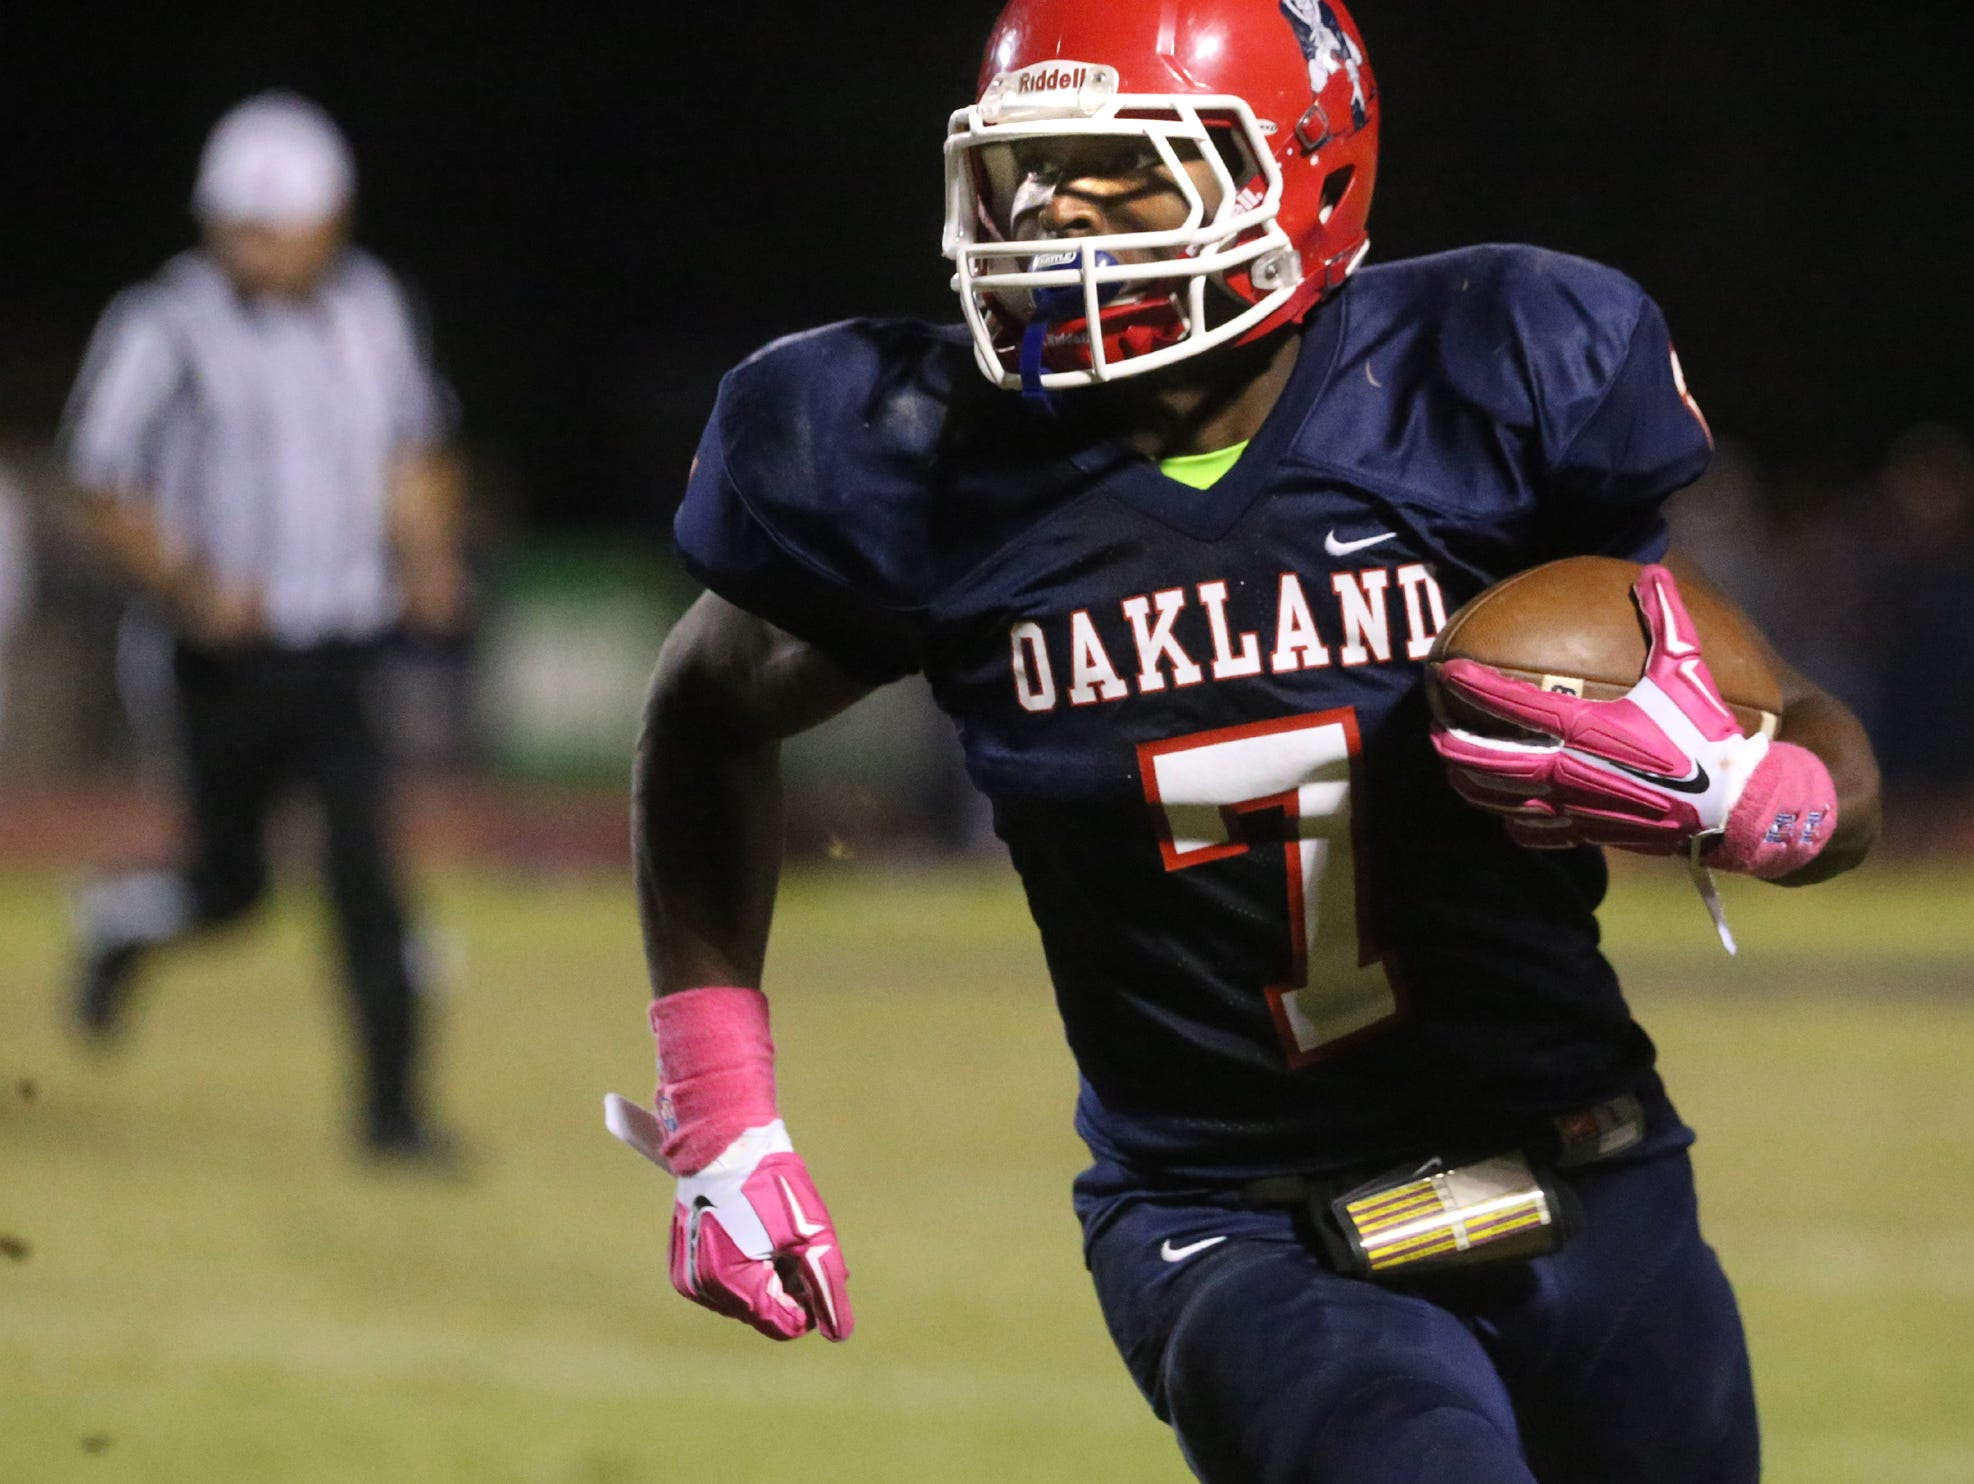 Oakland's JaCoby Stevens (7) runs the ball against Riverdale. Oakland travels to Cookeville on Friday.